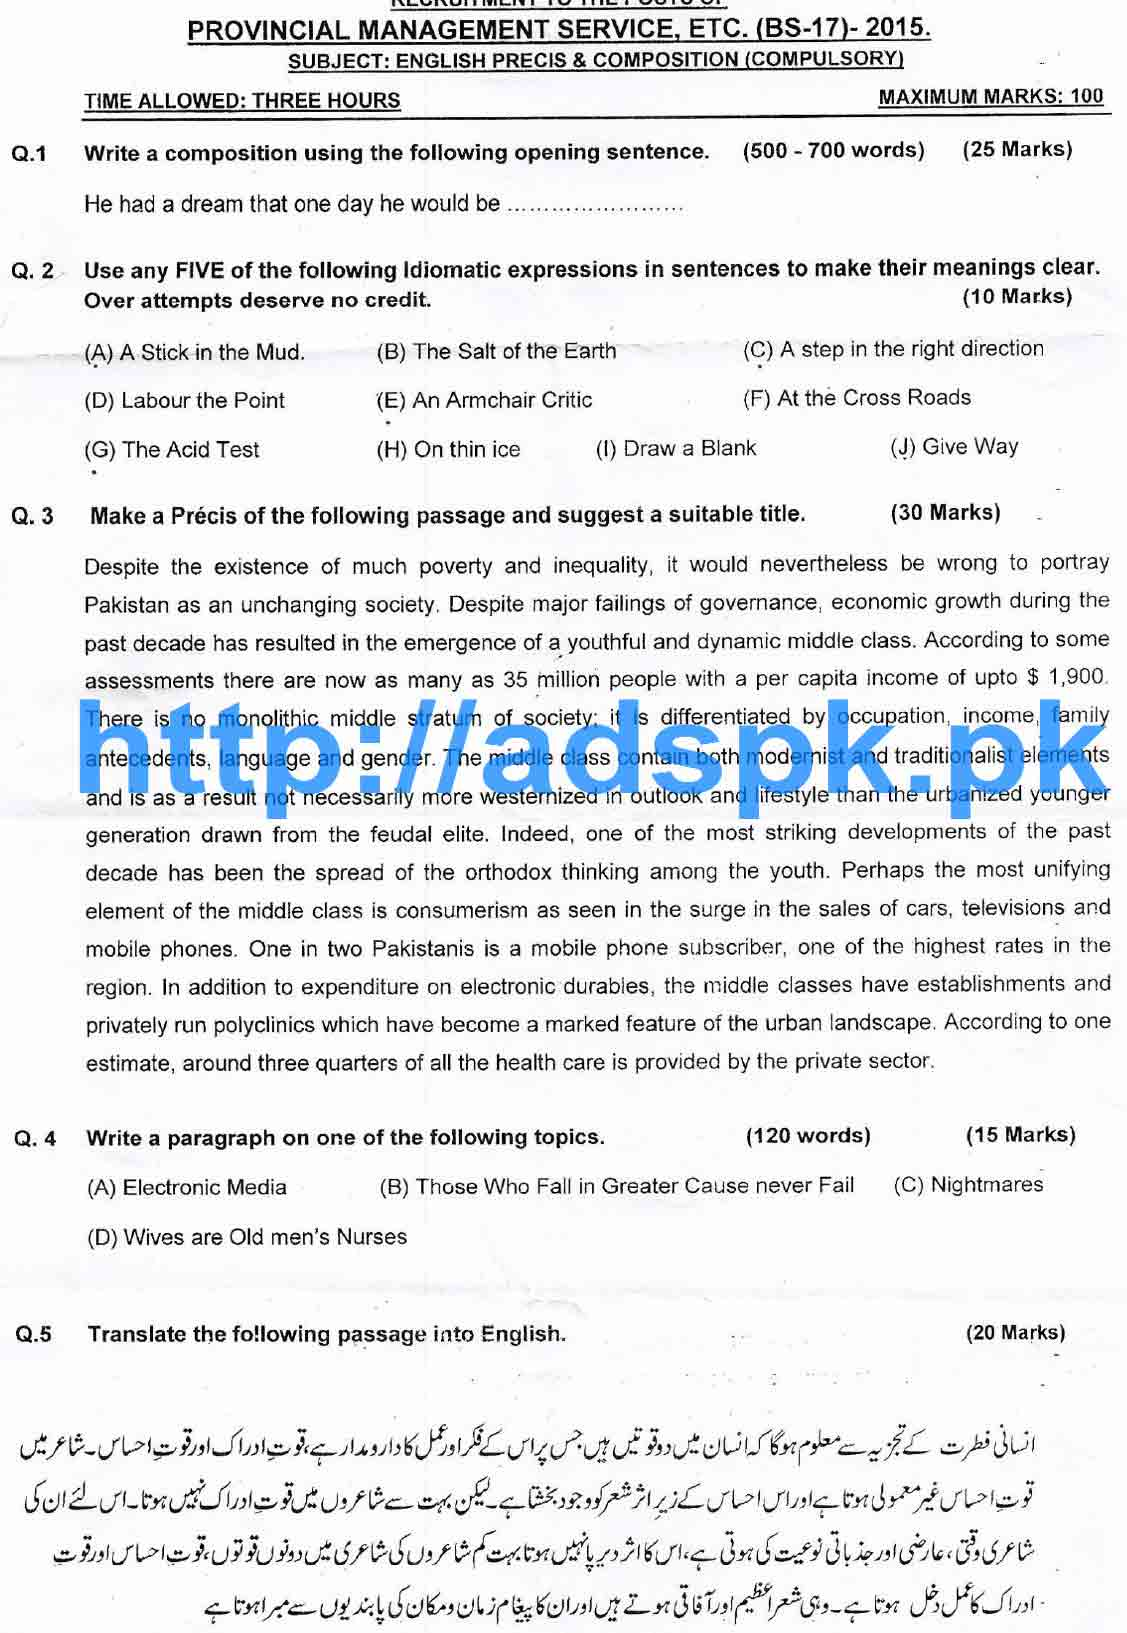 006 Determination Essay Latest Govt Jobs Pms Papers English Precise Composition Compulsory Provincial Management Service Must Prepare Now By Ppsc Lahore Pakistan Paper Remarkable Conclusion Sample Full